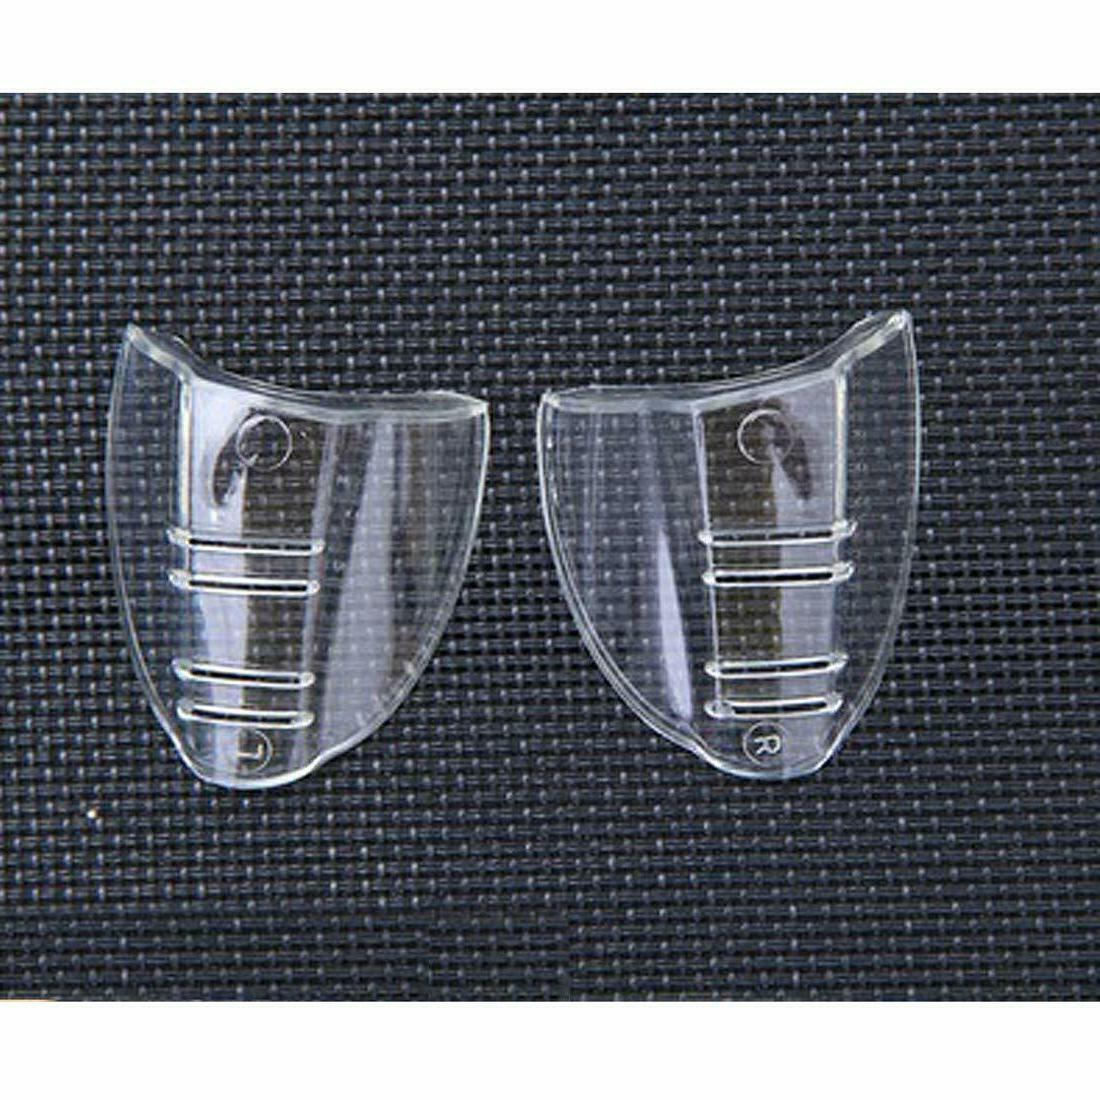 4 Safety Glasses Side Shields Slip Protection Small